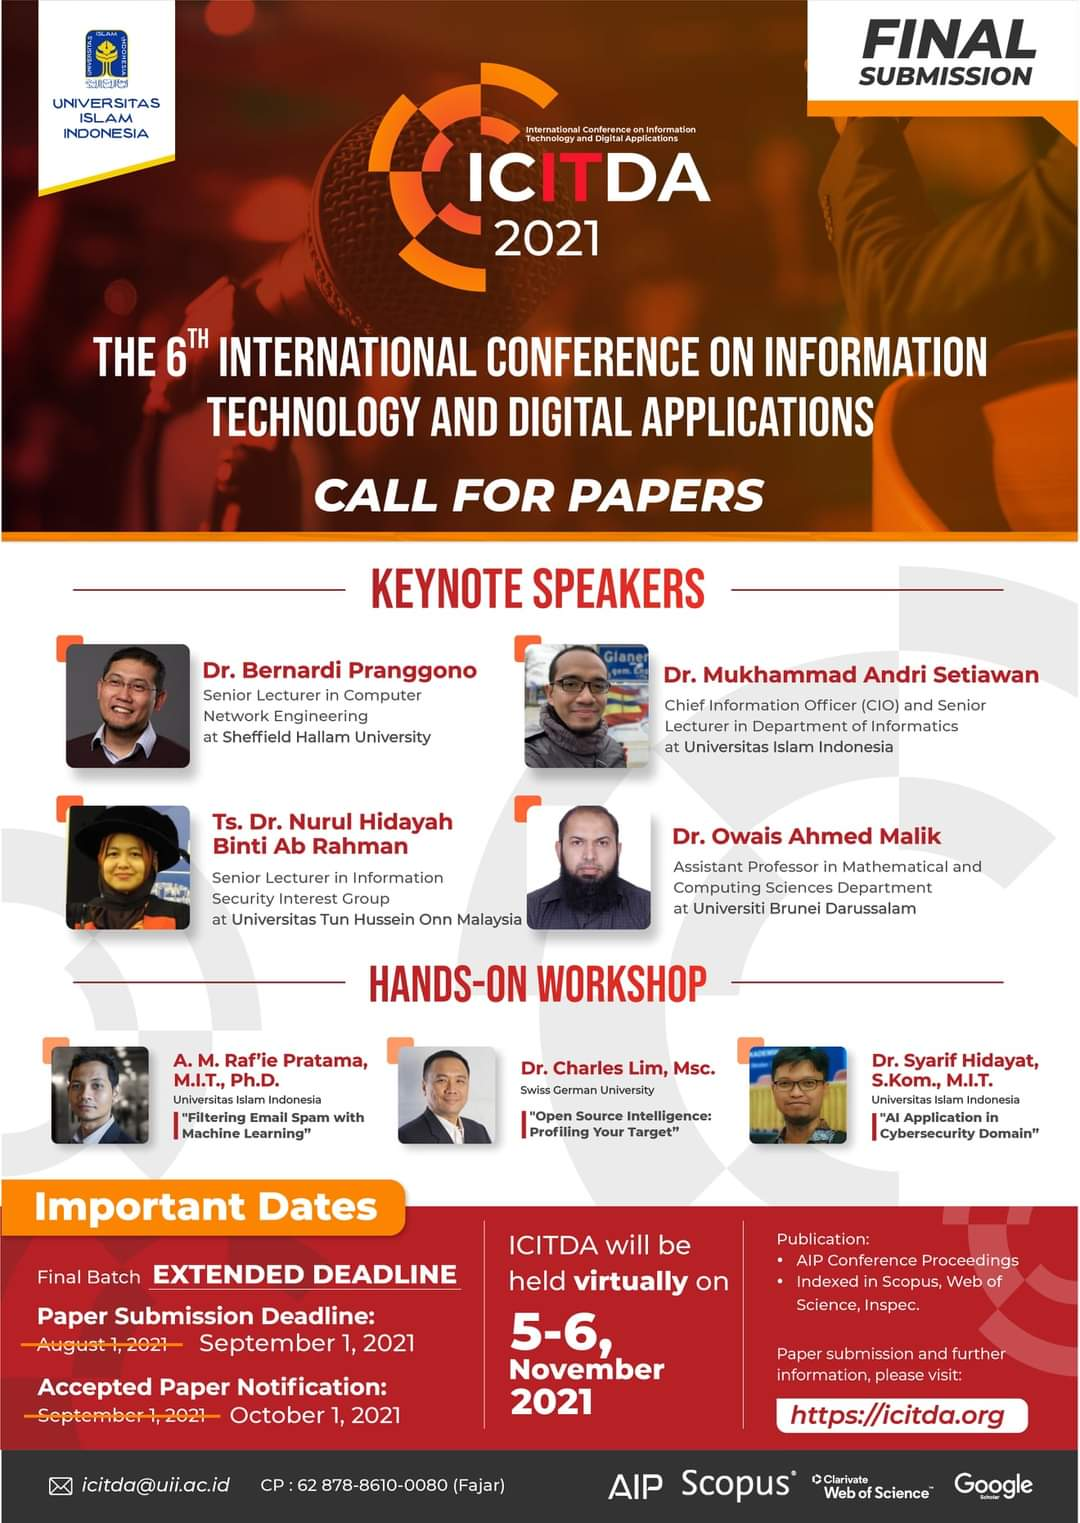 The 6th International Conference on Information Technology and Digital Applications (ICITDA 2021)